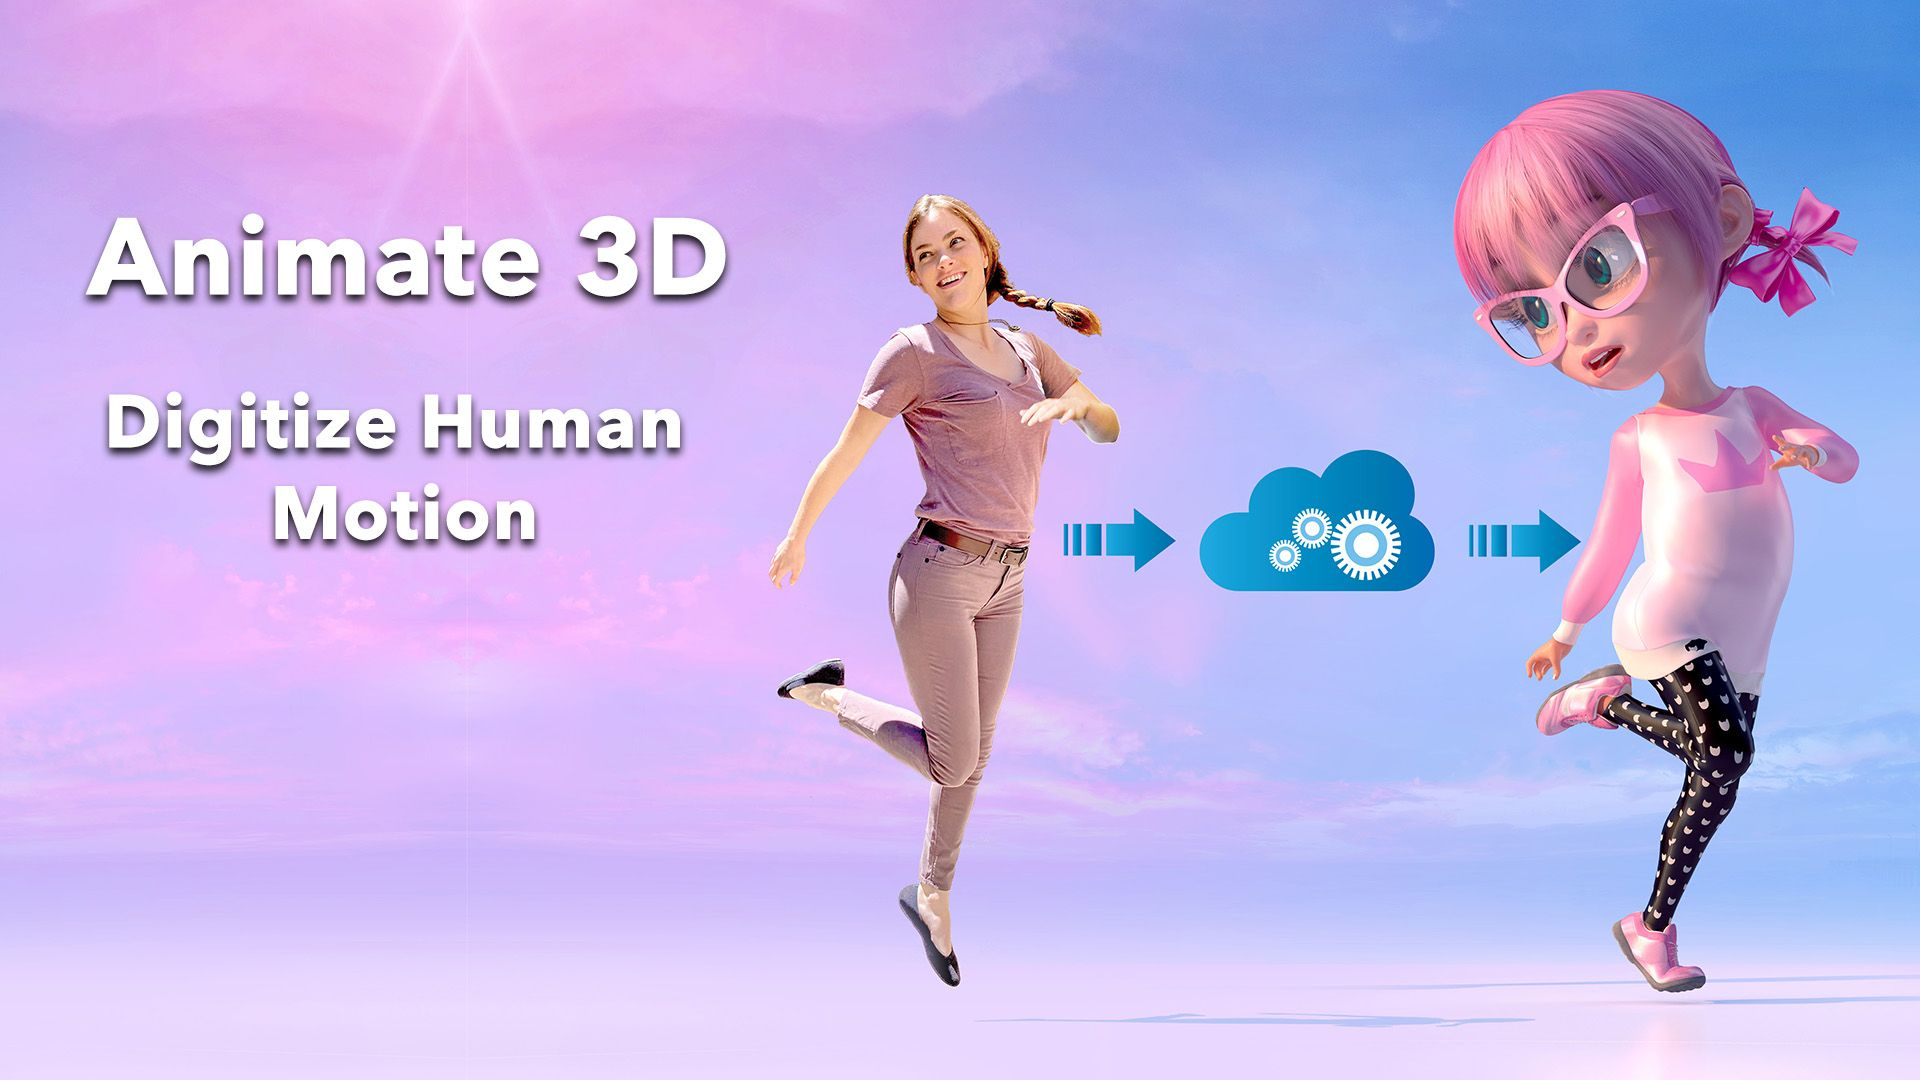 Animate 3D: Digitize Human Motion - Sign Up for the Alpha!